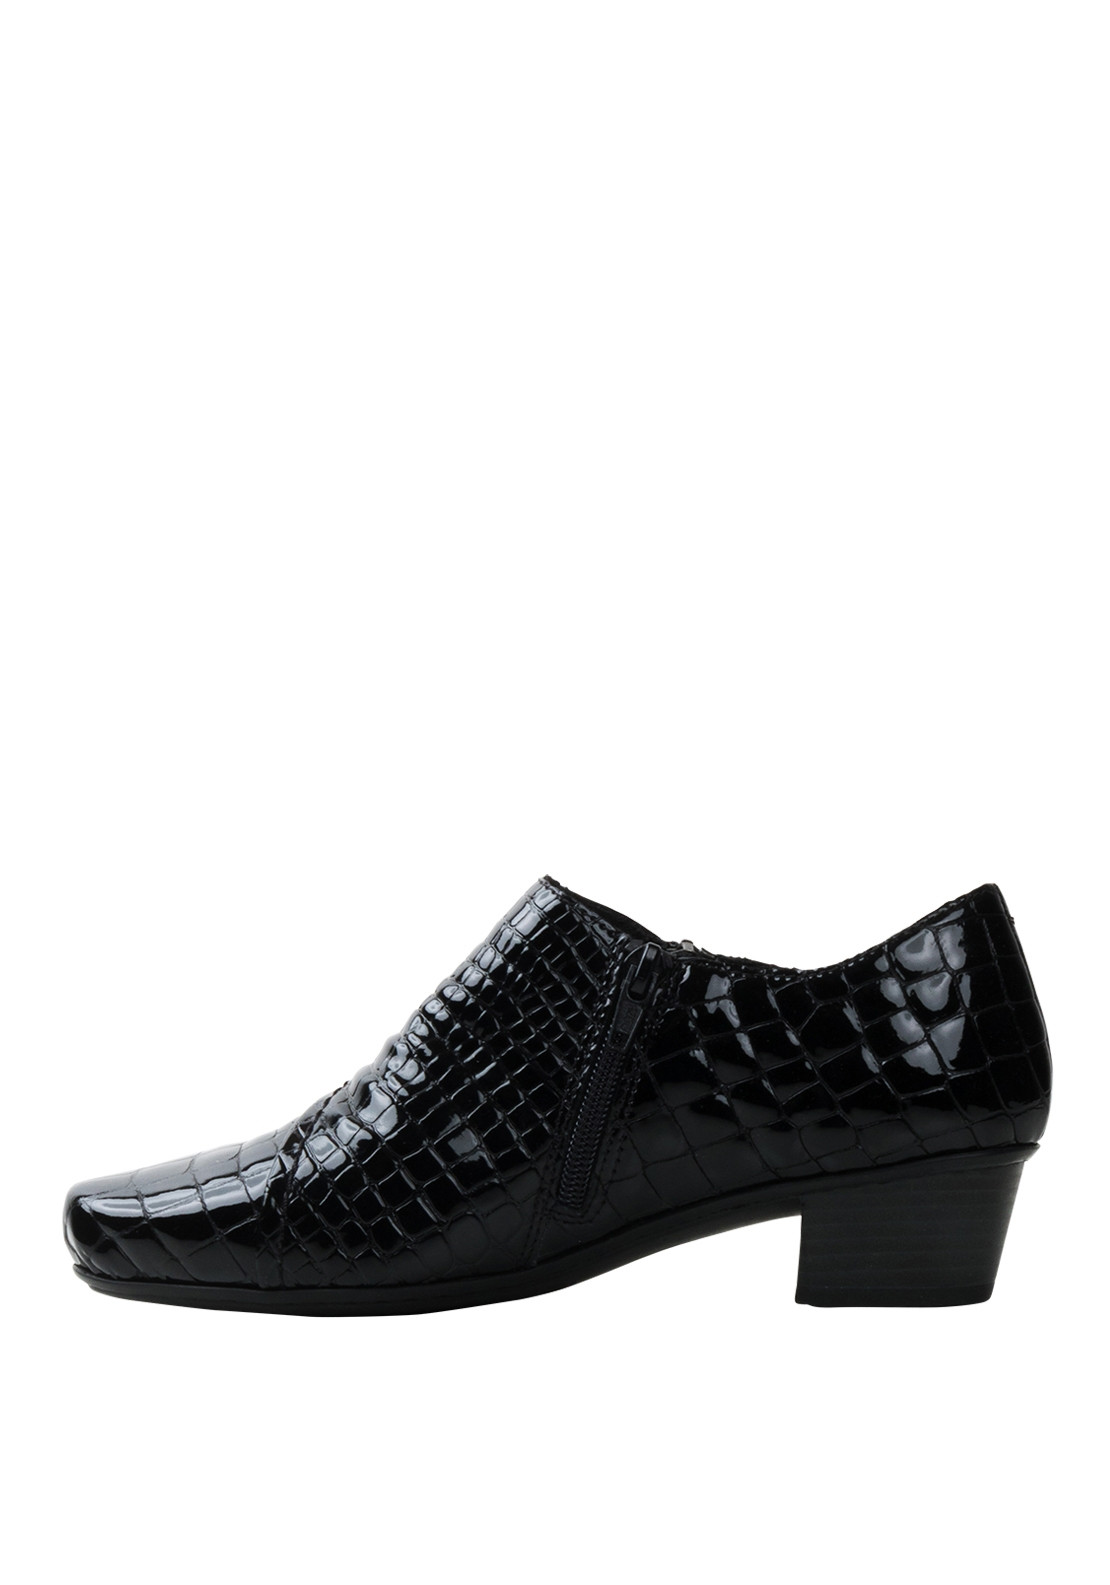 Rieker Womens Croc Print Leather Shoes, Black